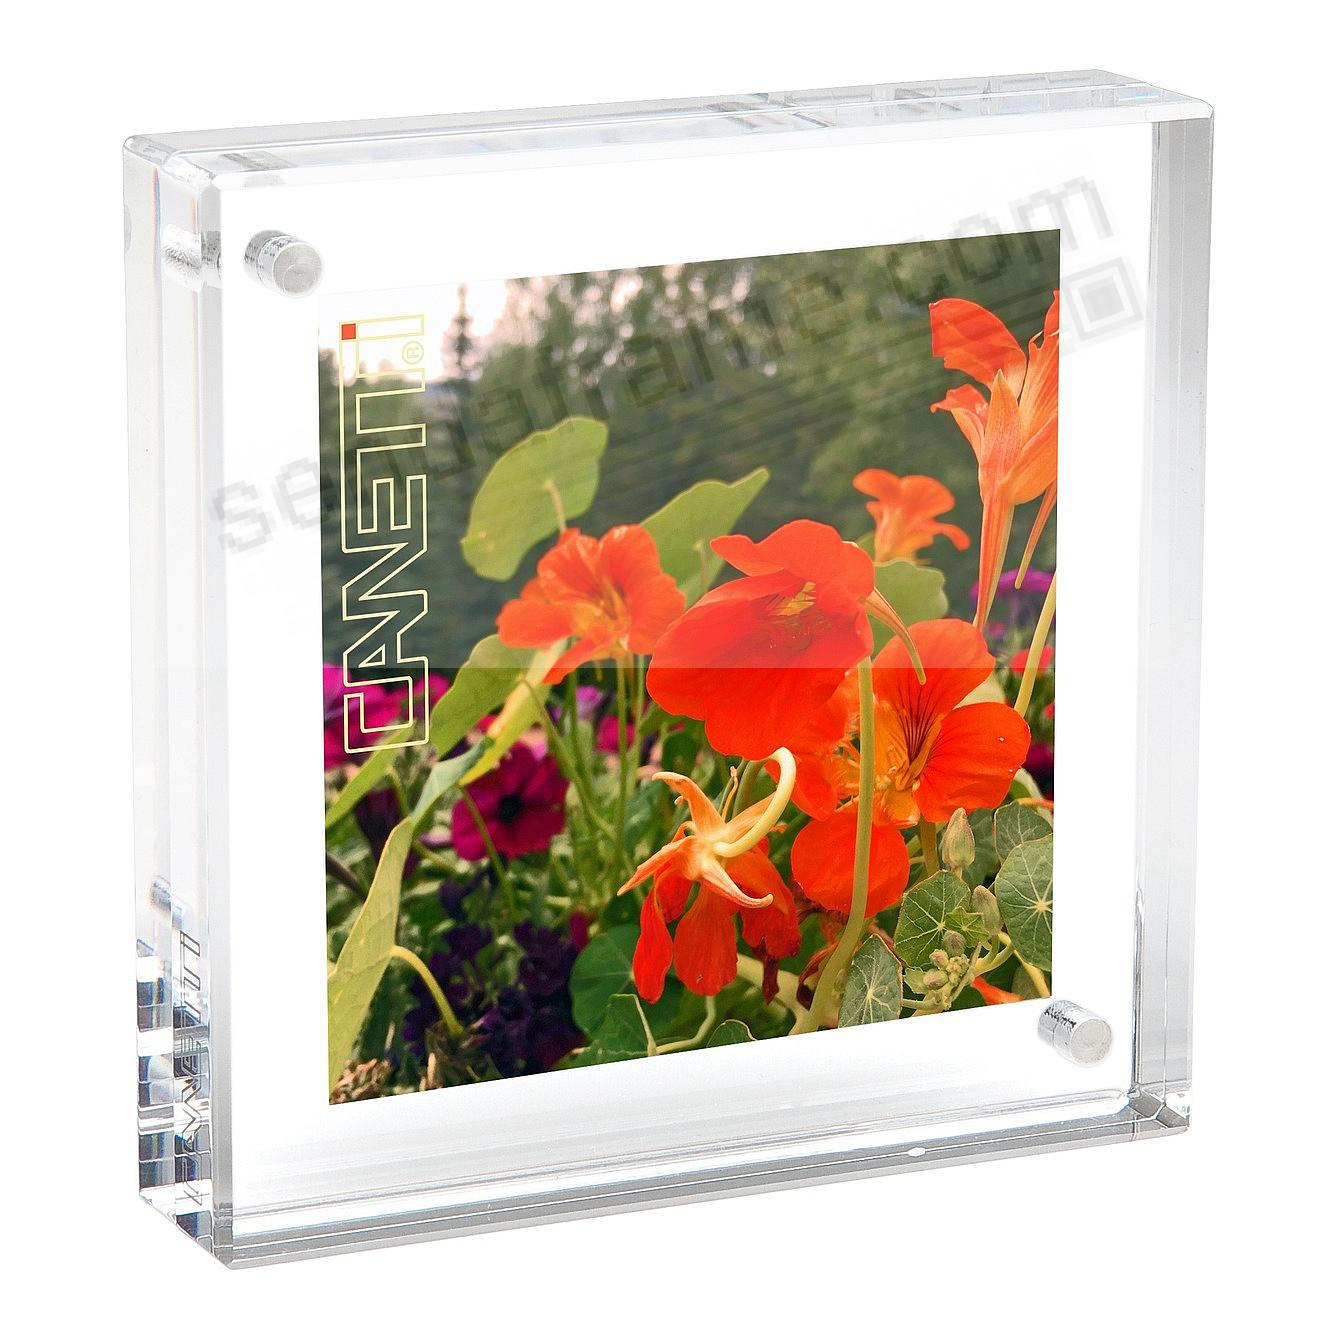 The original acrylic museum MAGNET FRAME<br>by Canetti&reg; - now in 6x6 size